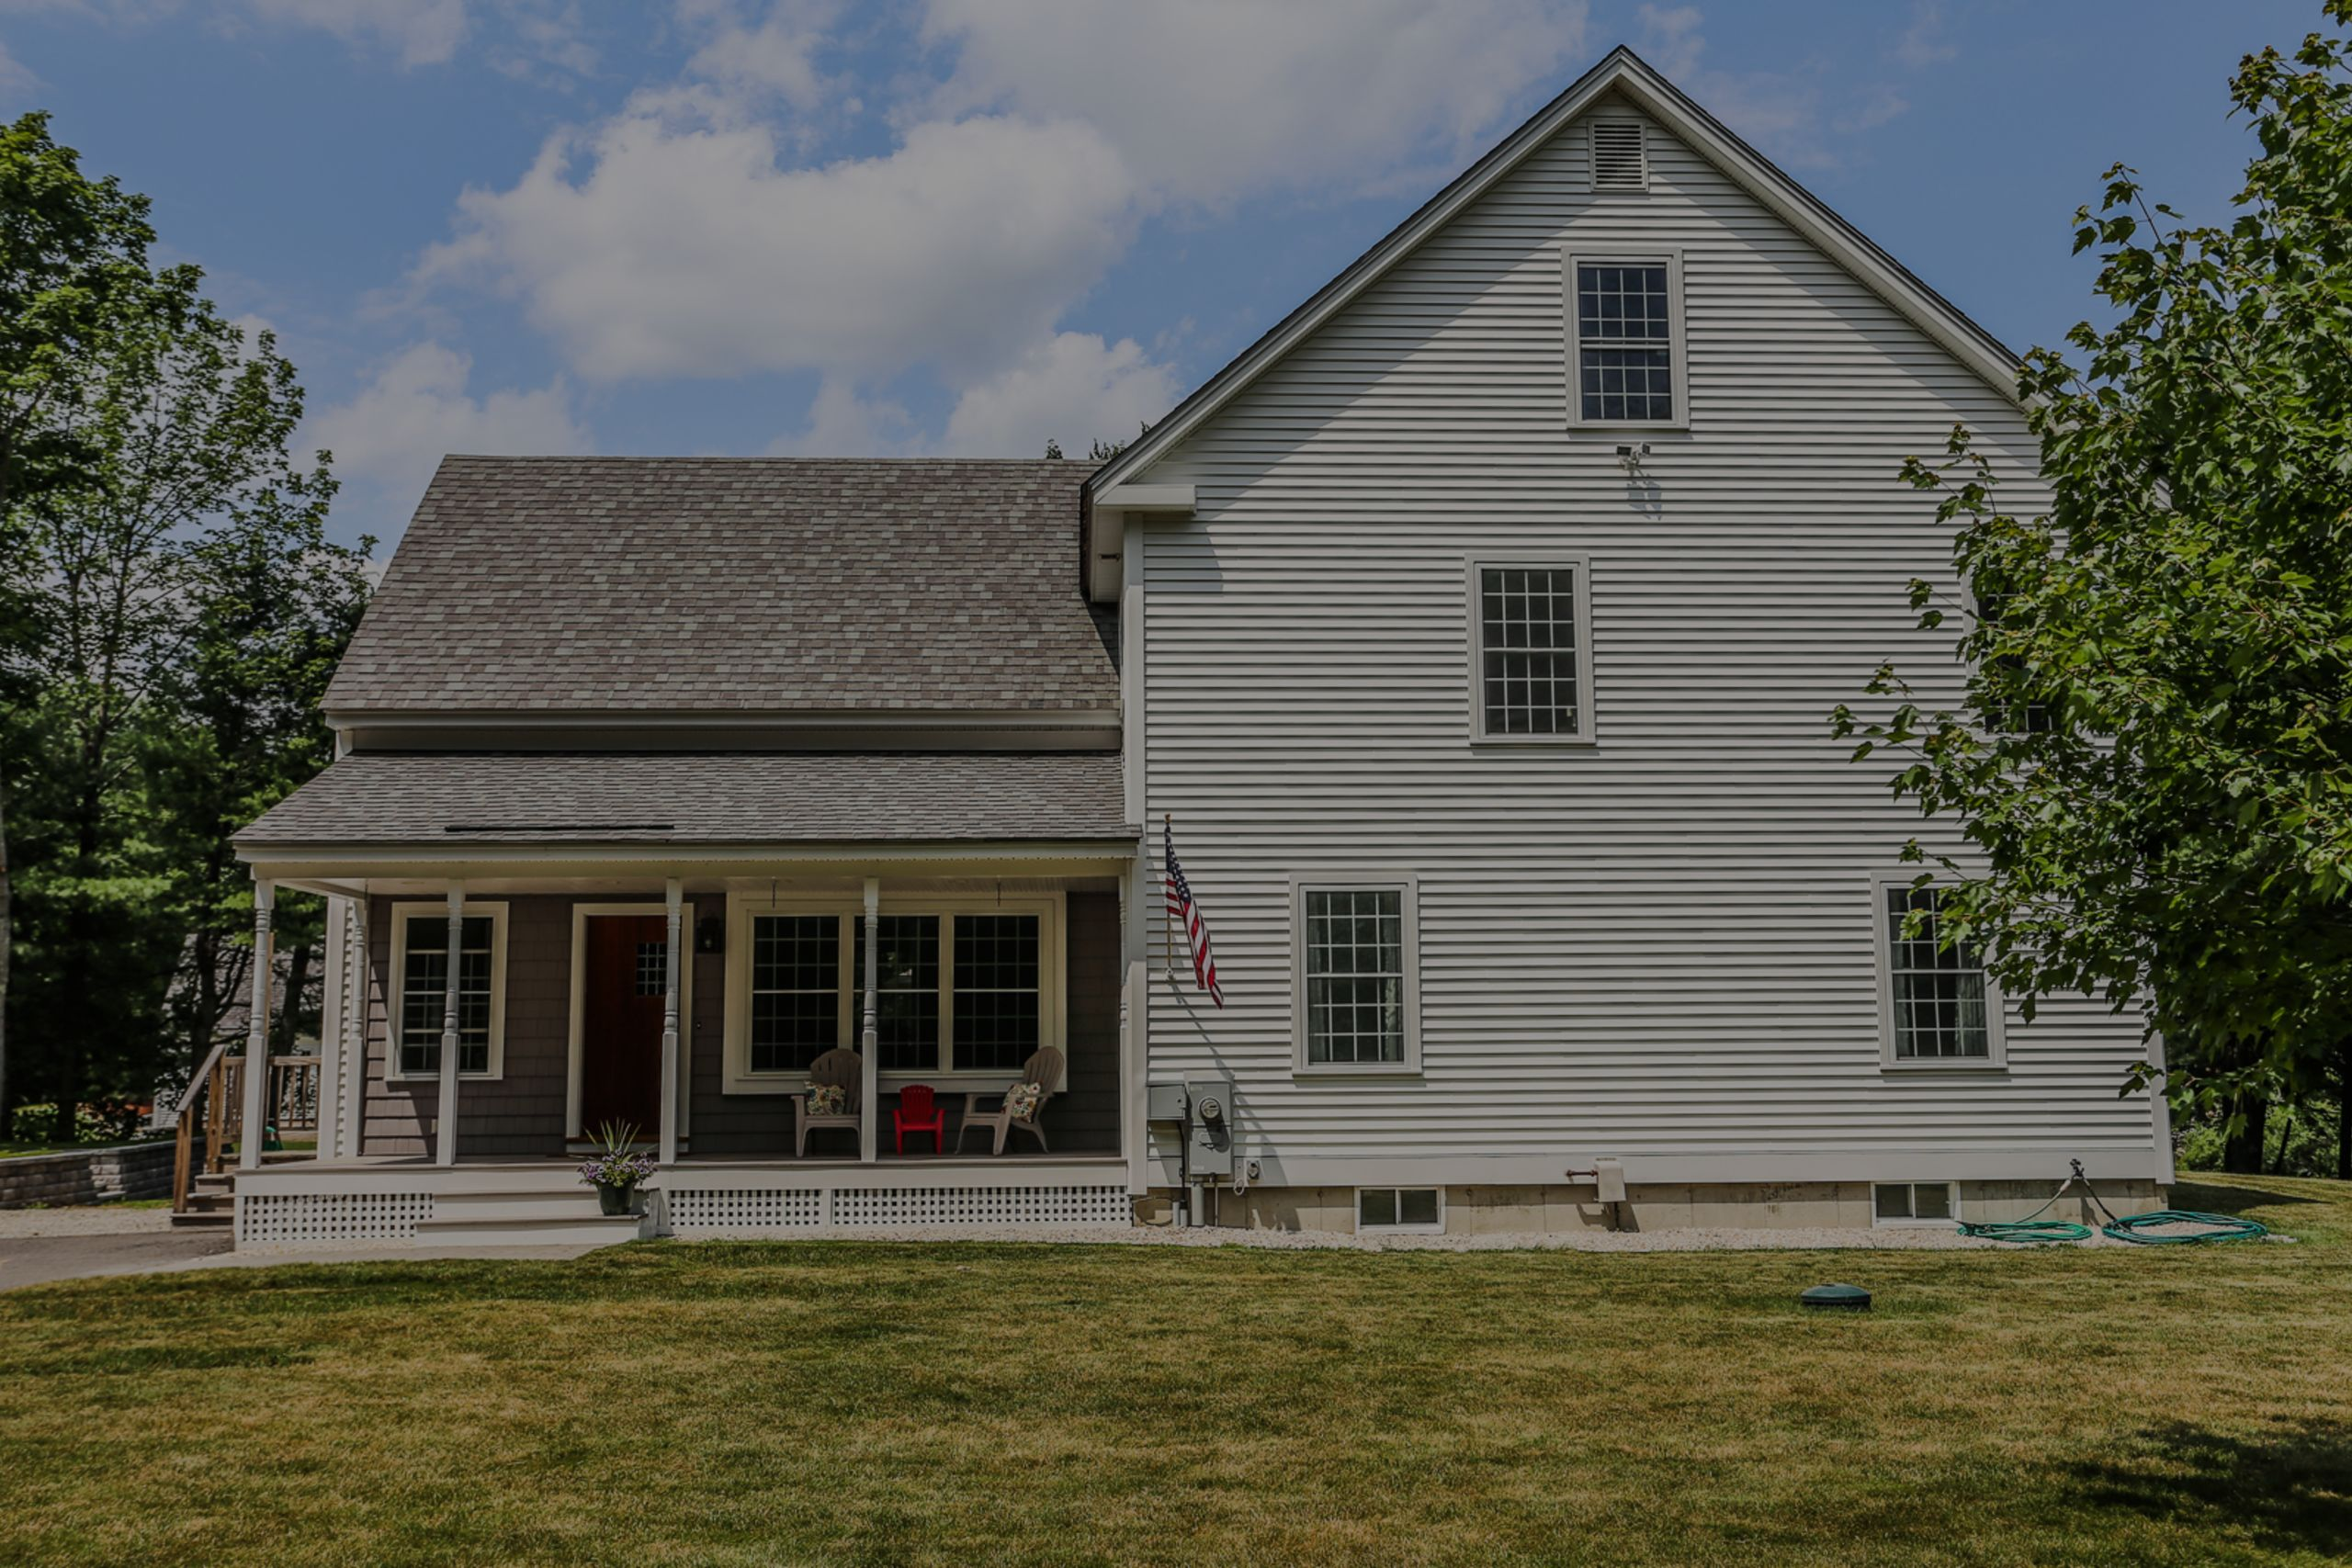 265 Candia Rd, Chester NH-Offered at $412,000